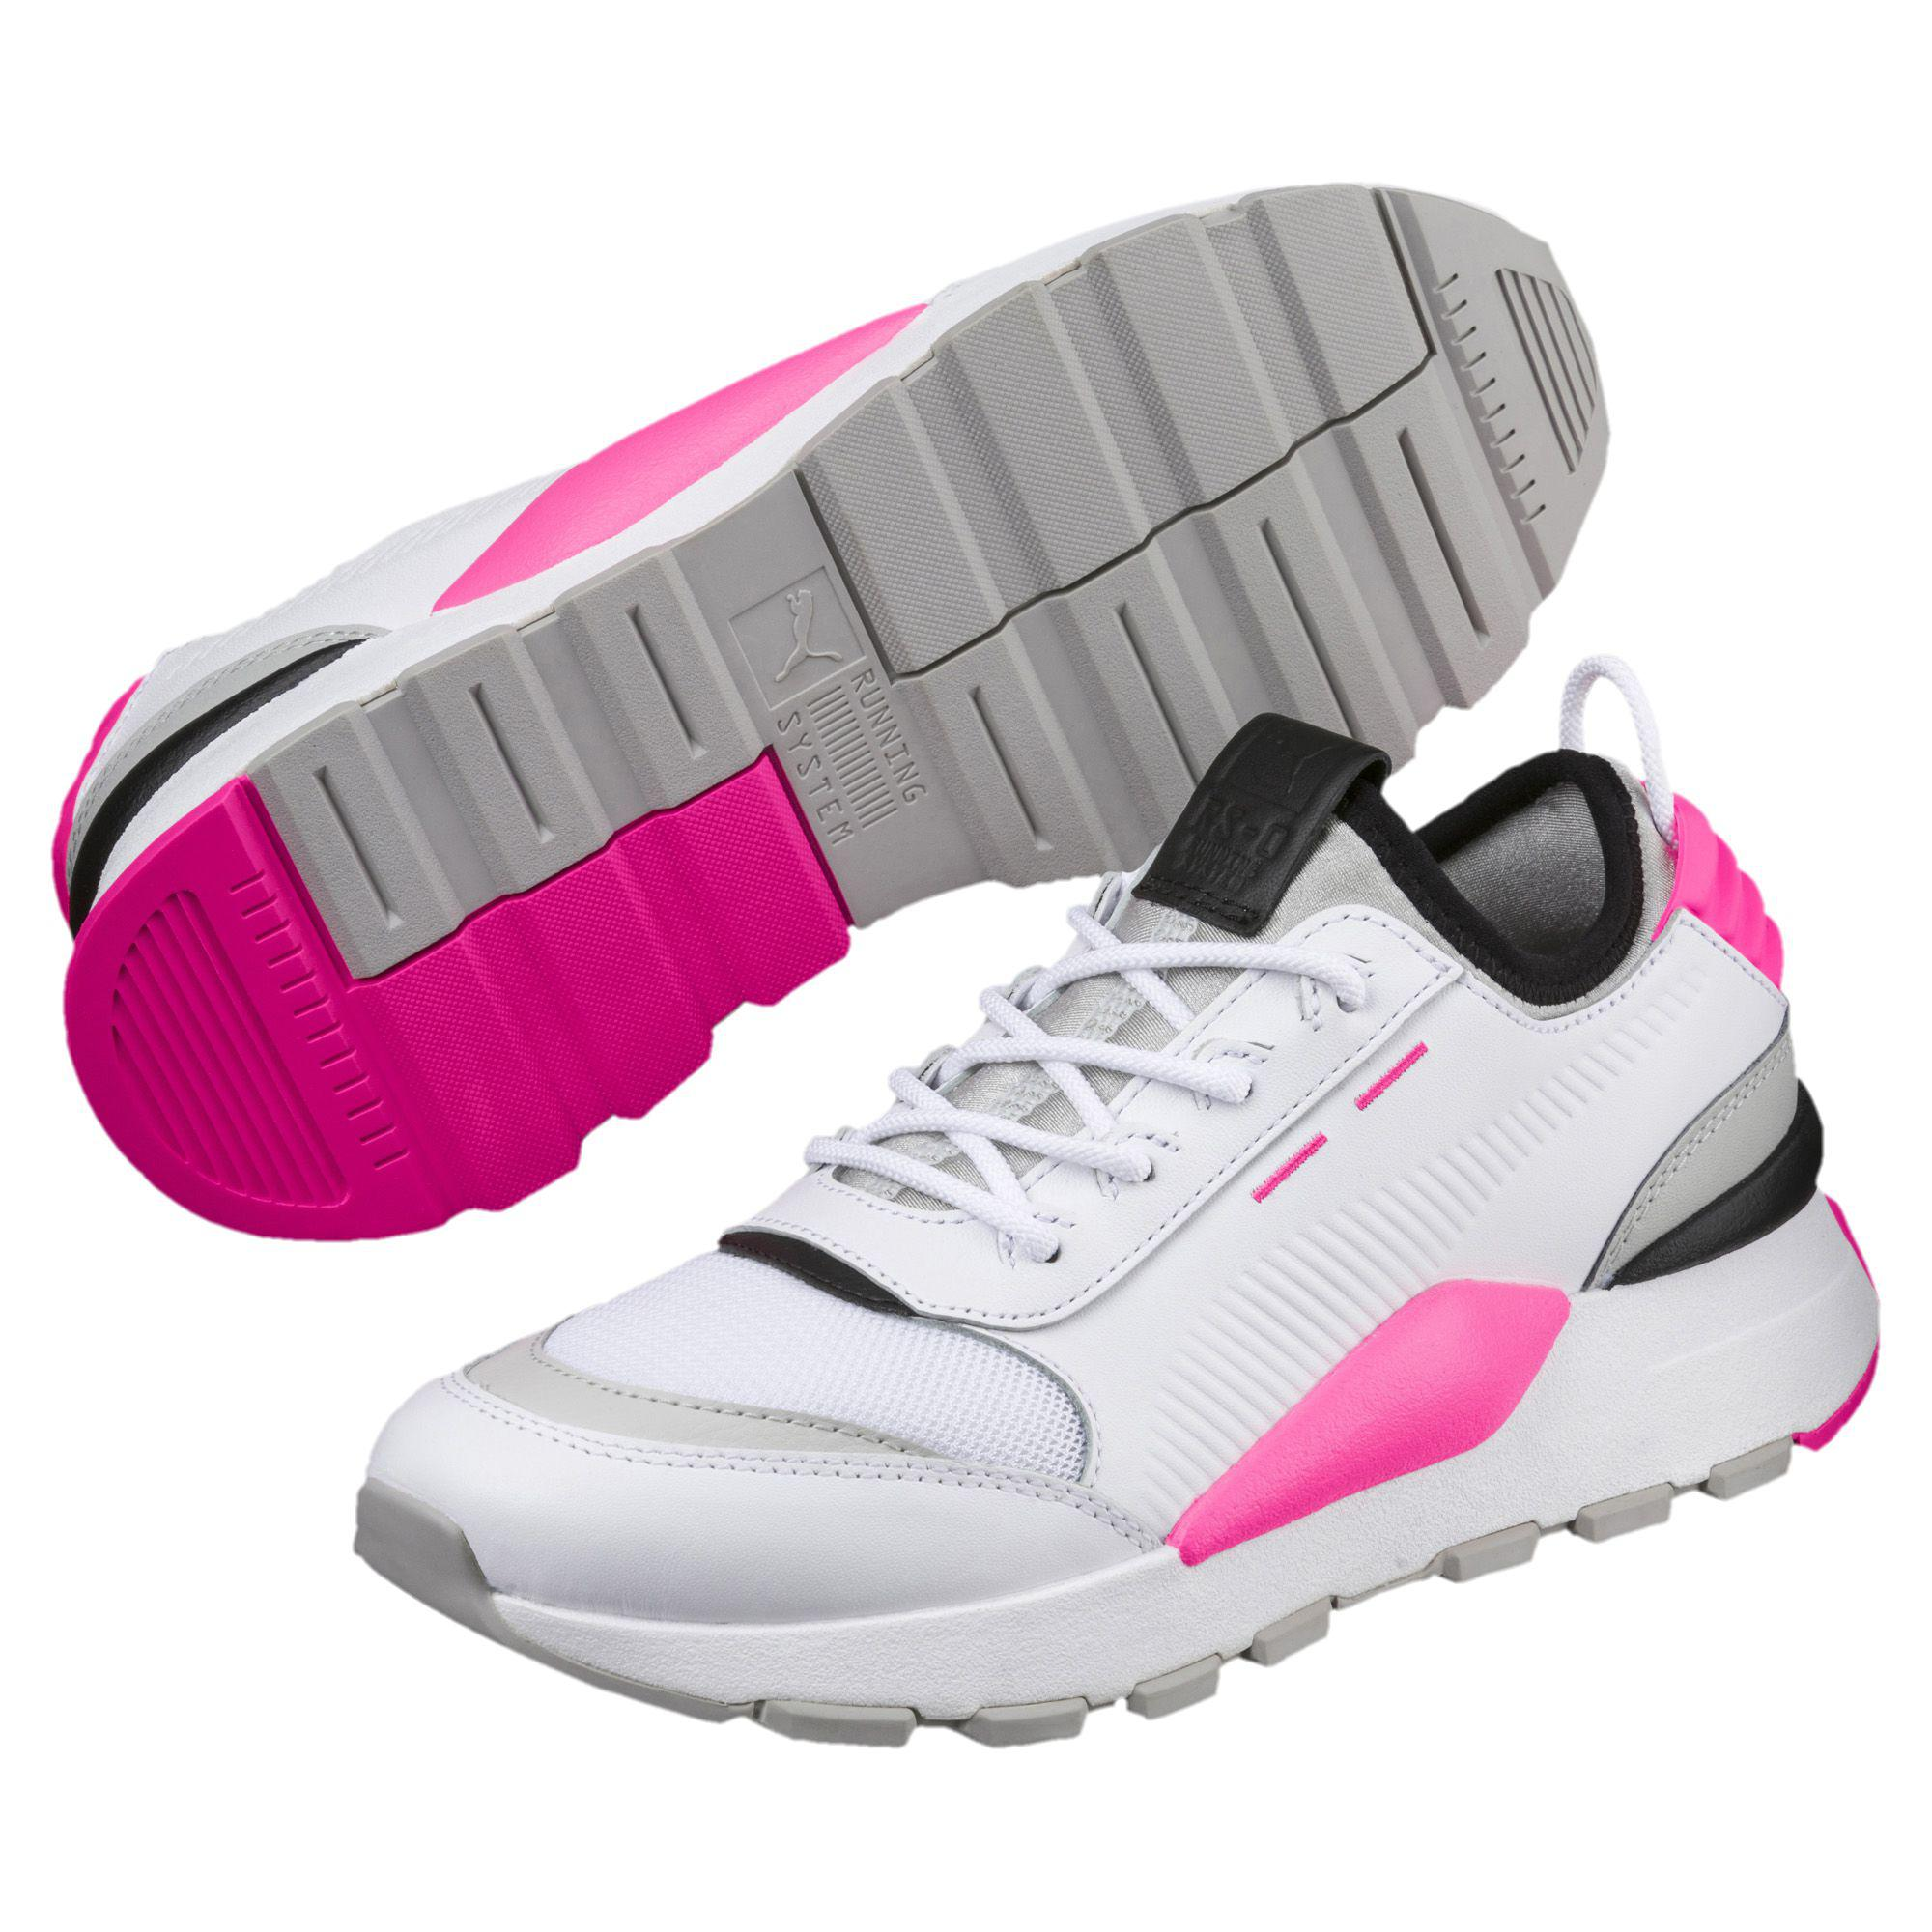 2a552f3485e PUMA - Pink Evolution Rs-0 Sound Casual Trainers - Lyst. View fullscreen